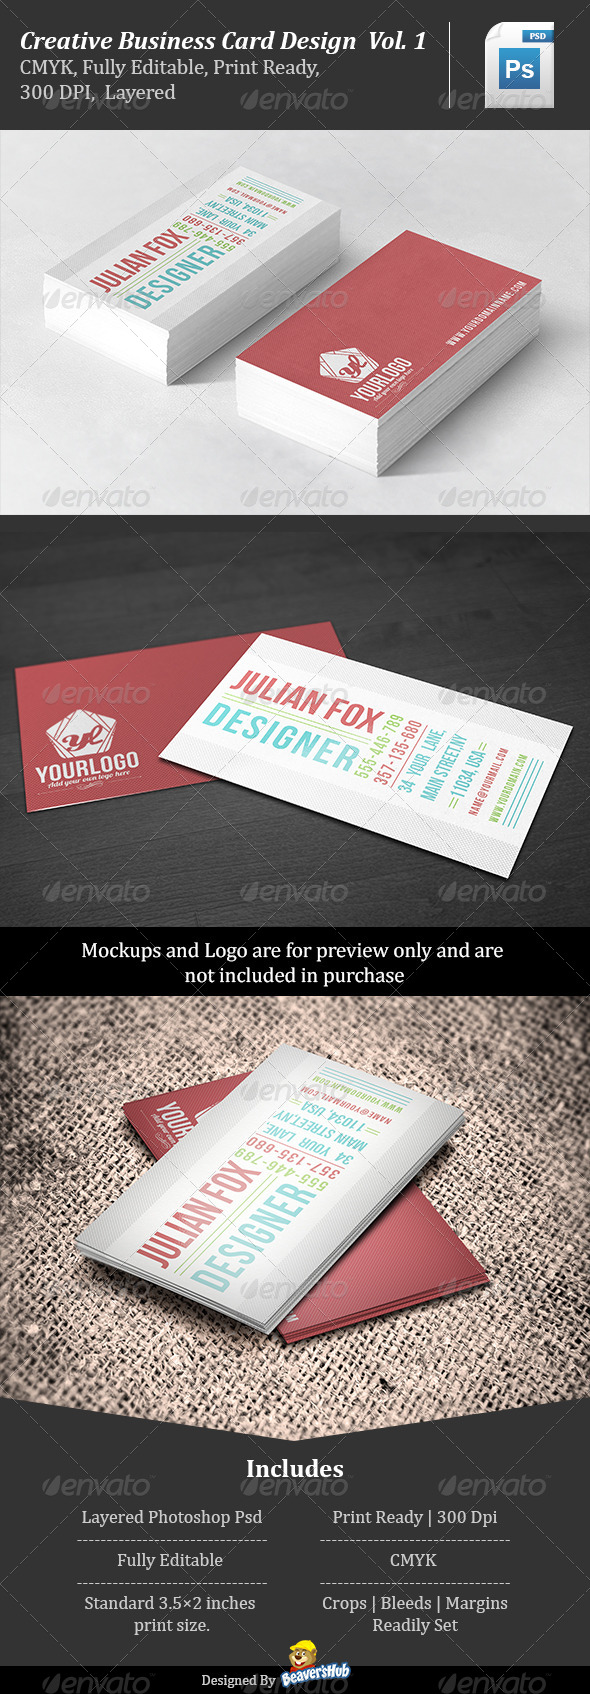 Creative Business Card Design Vol.1 - Creative Business Cards